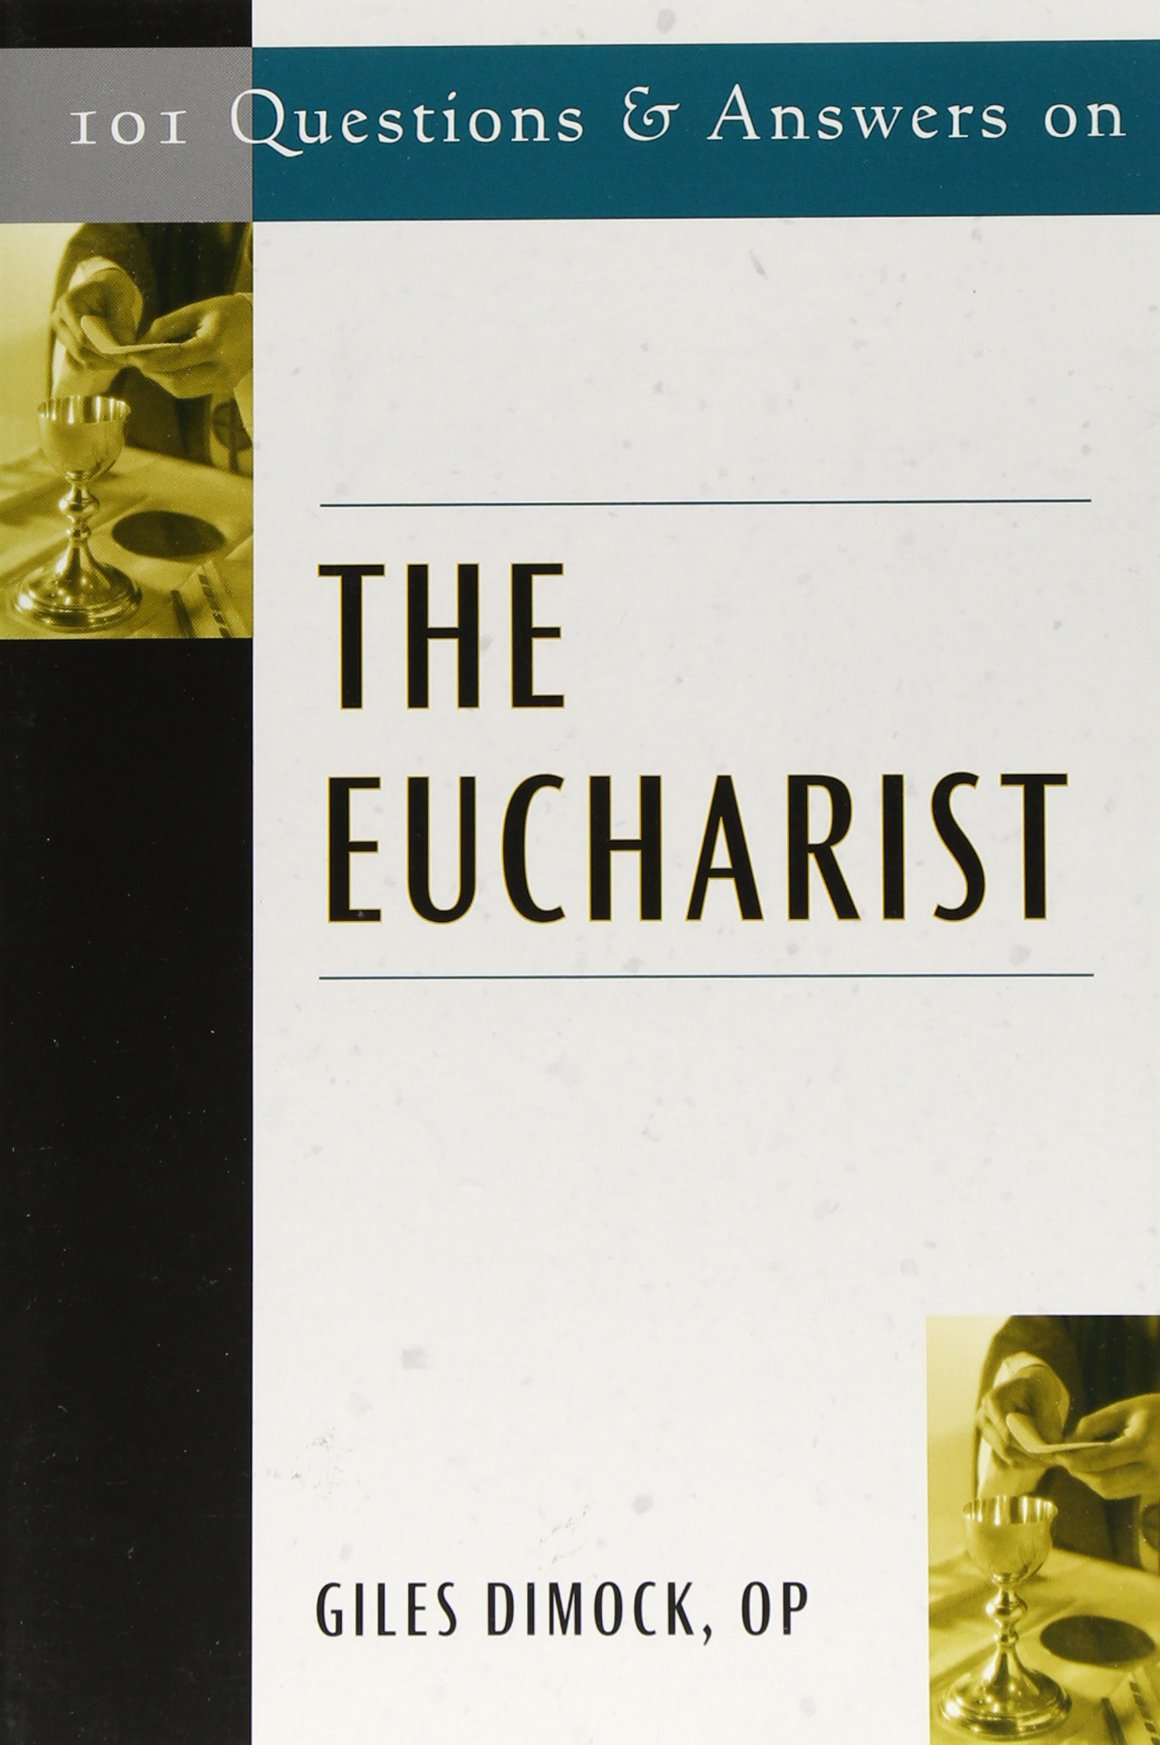 101 Questions and Answers on the Eucharist: Giles Dimock: 9780809143658:  Amazon.com: Books